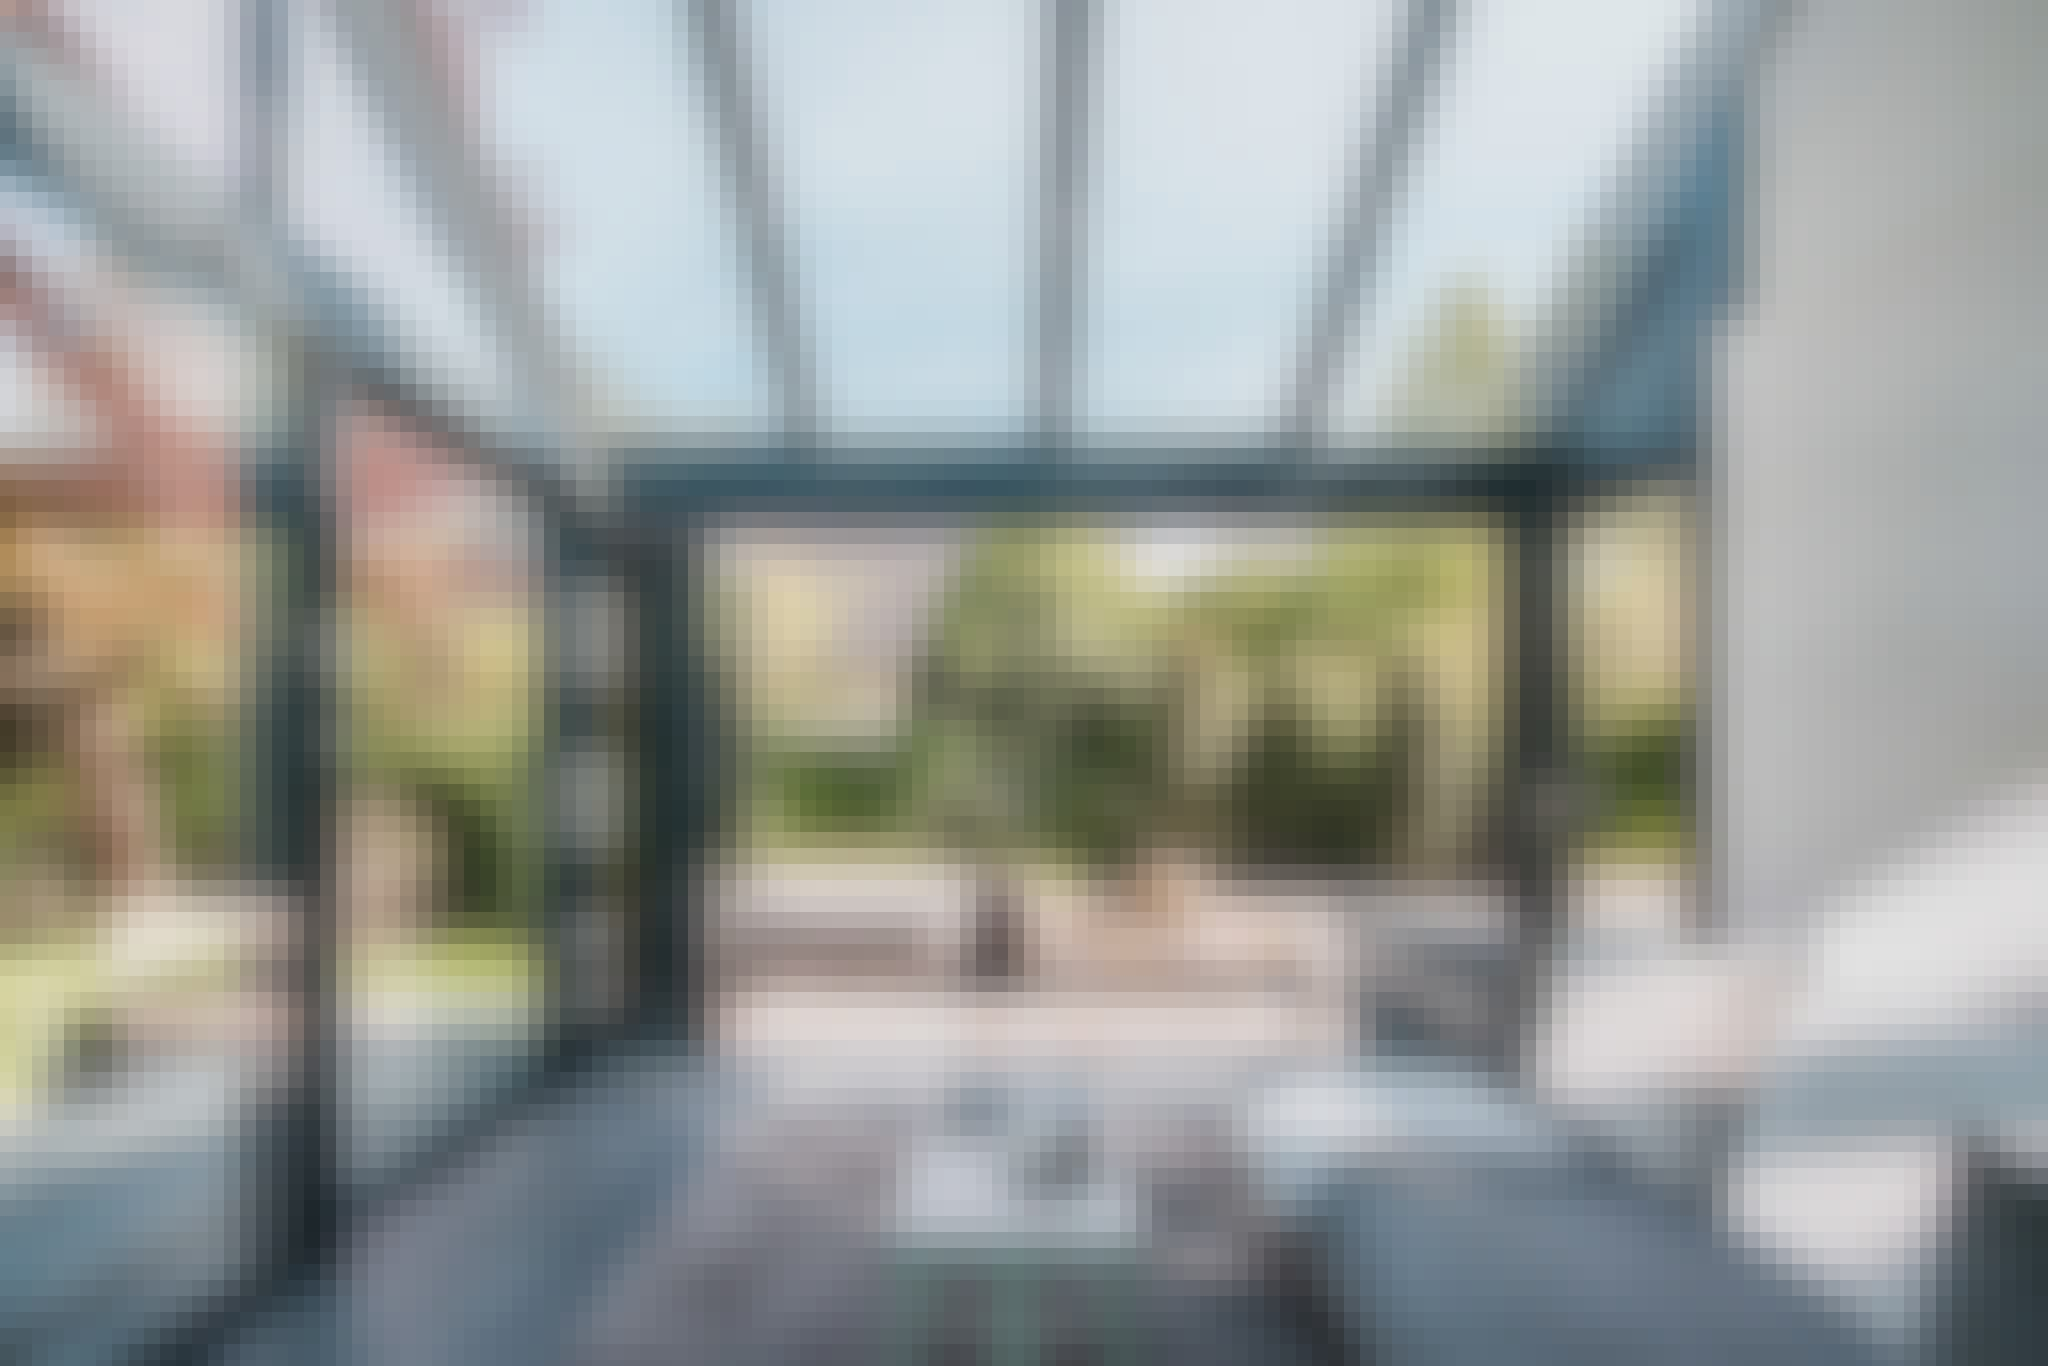 opening glass patio doors in a sunroom